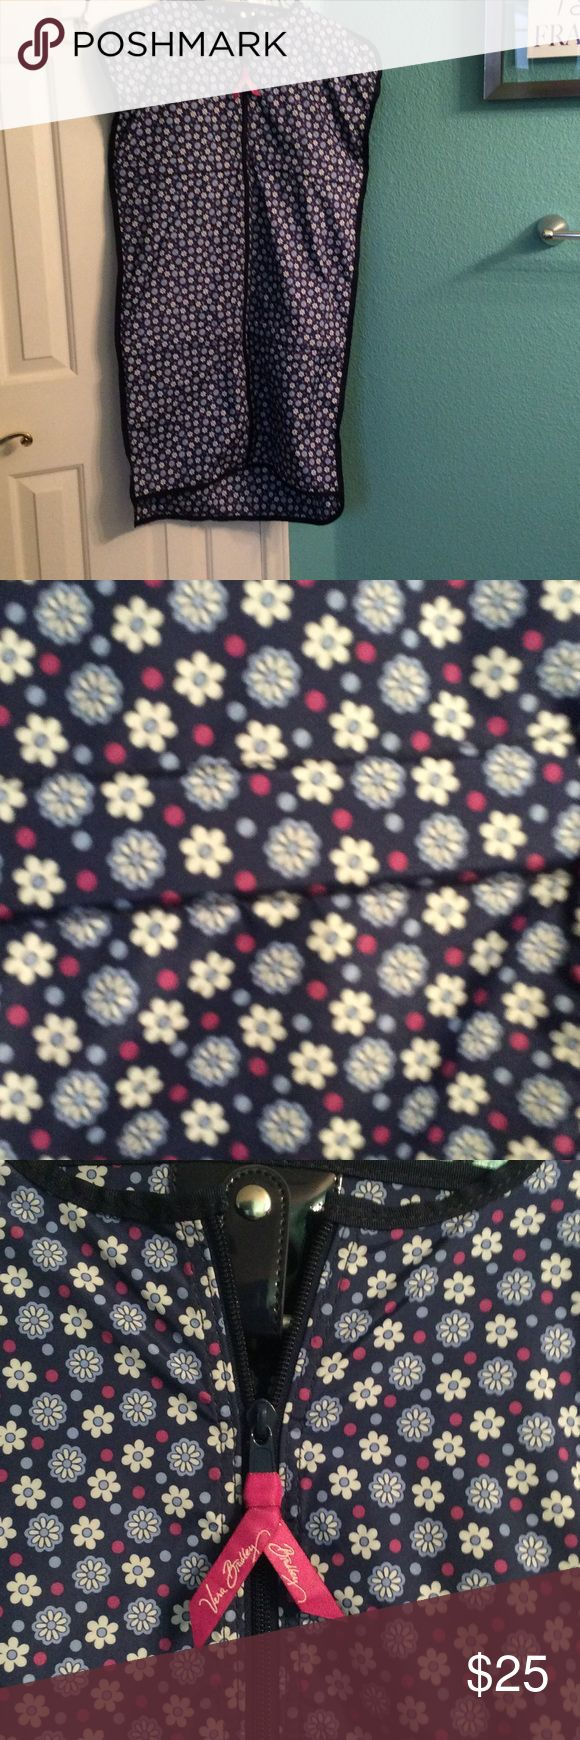 Vera Bradley Garment Bag Beautiful flower print. Rayon (no fabric) for easy cleaning. Perfect for dance recitals and weddings. Vera Bradley Other